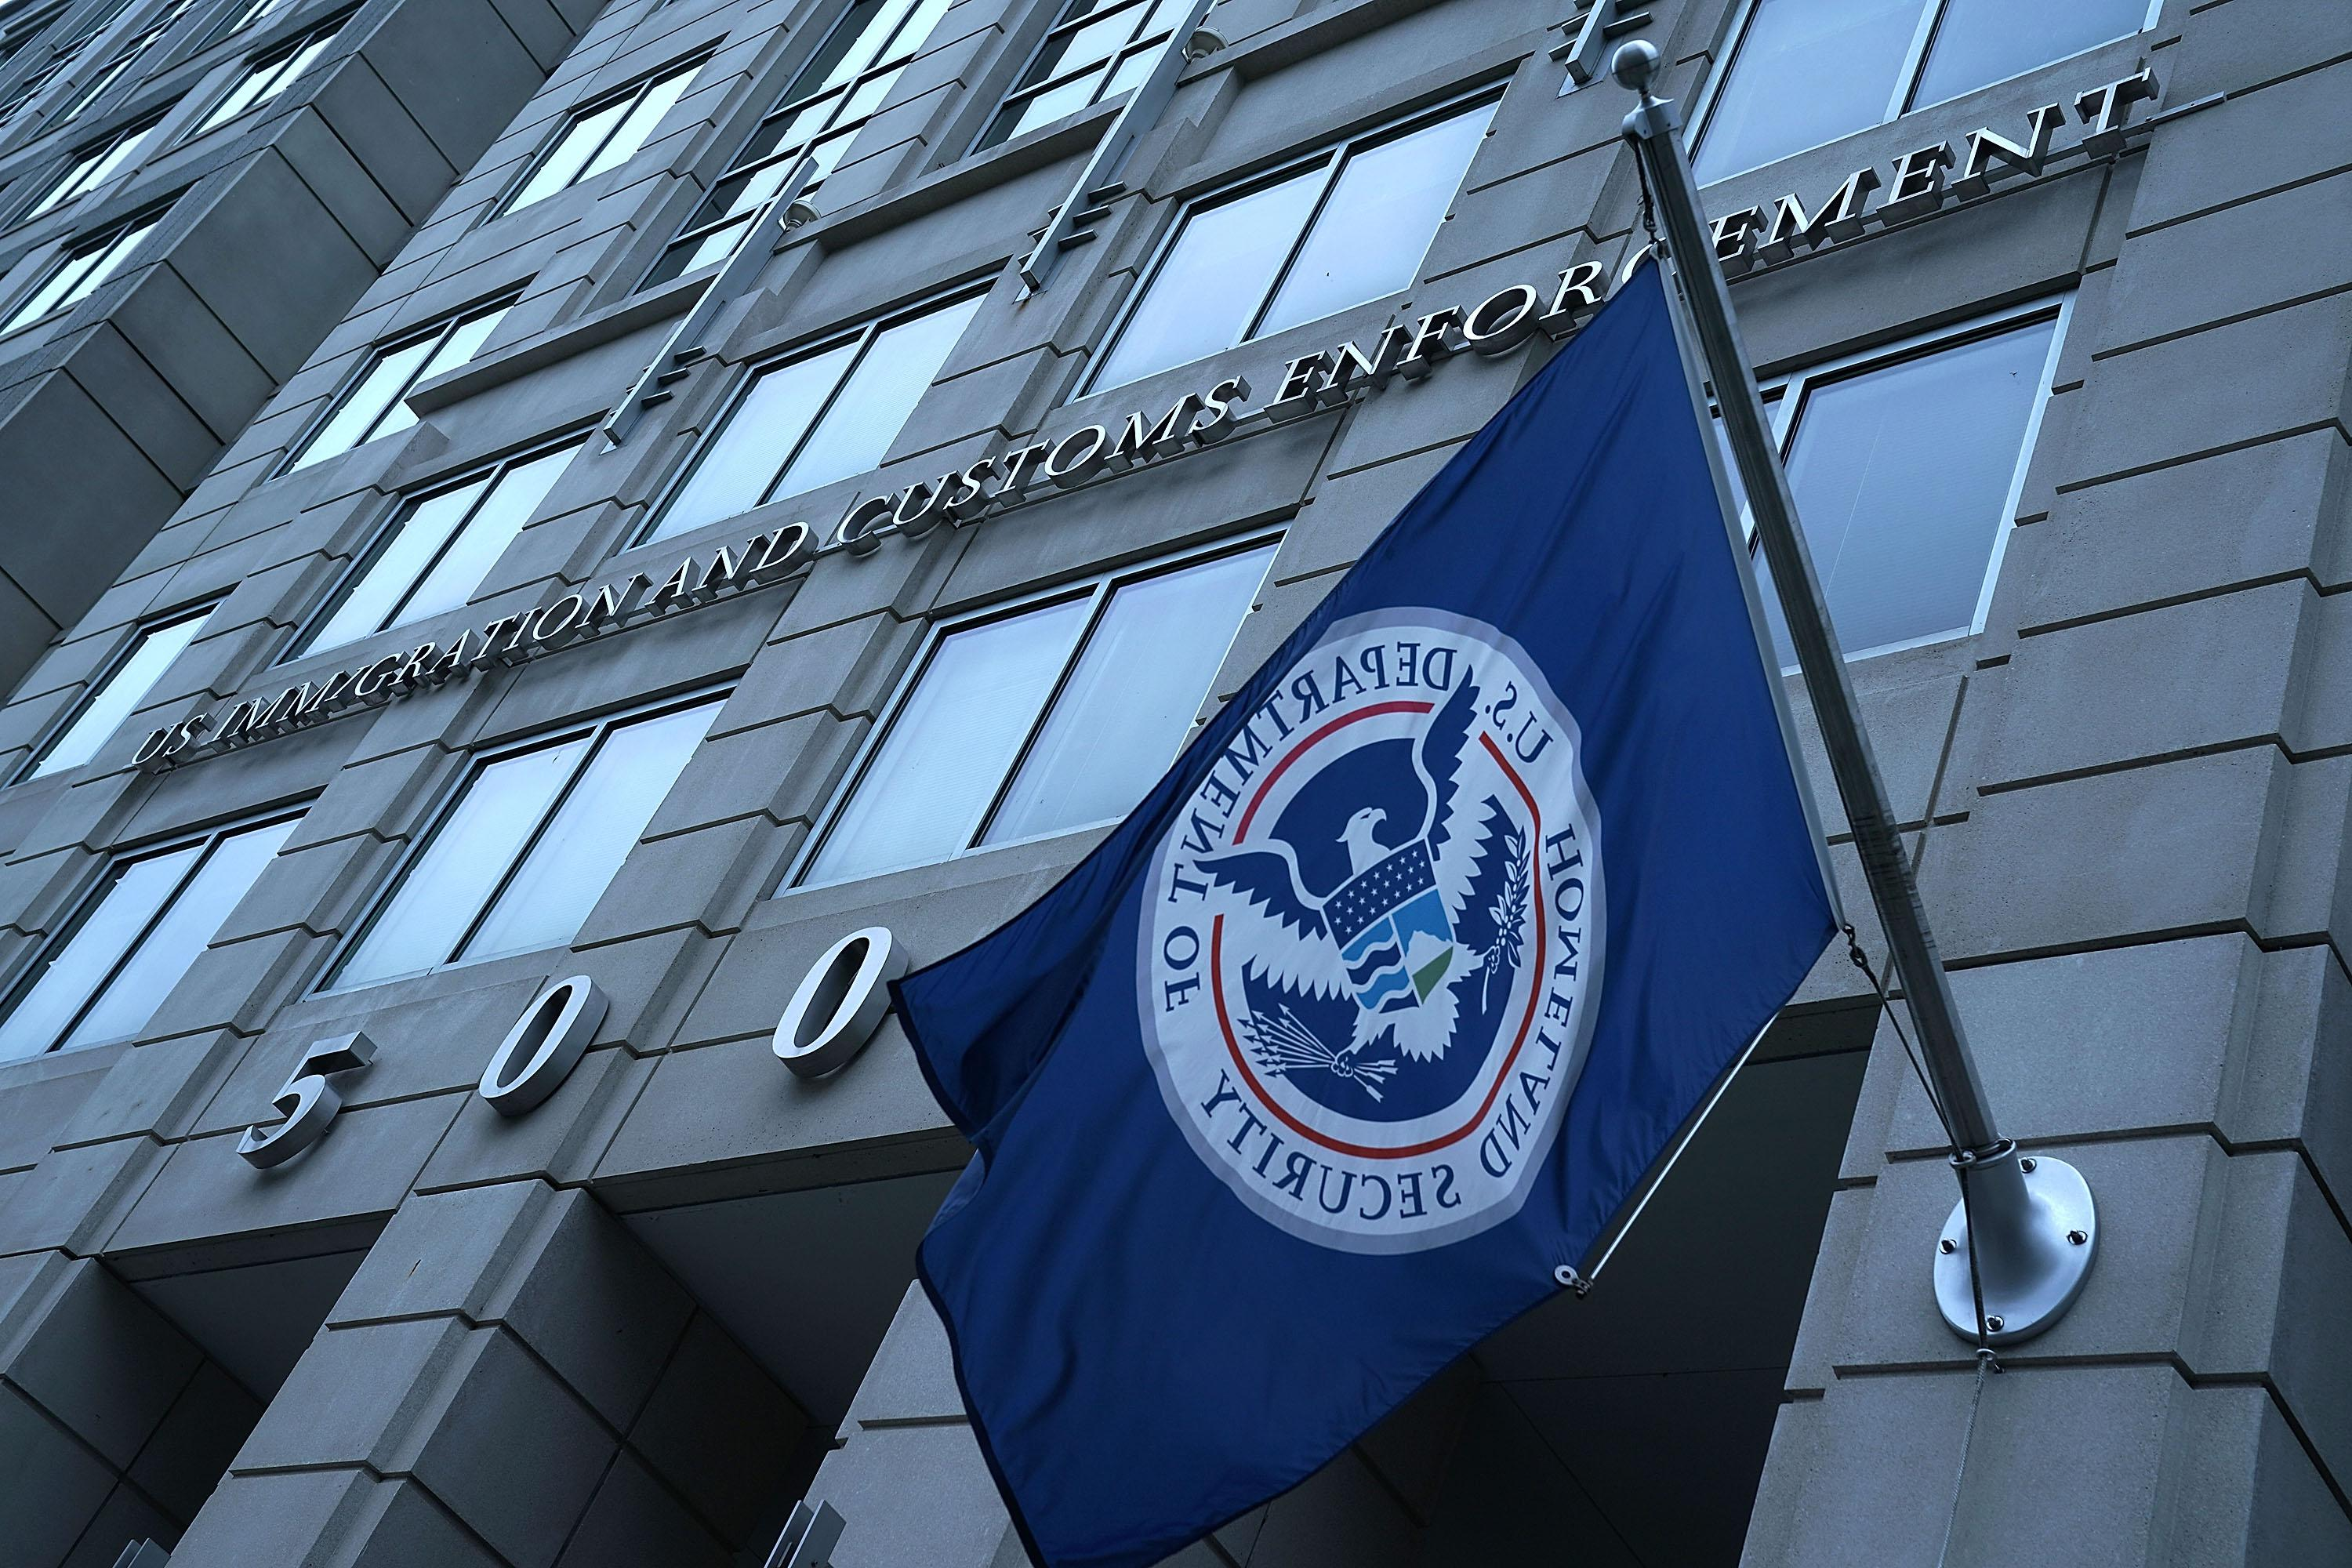 An exterior view of U.S. Immigration and Customs Enforcement (ICE) agency headquarters is seen July 6, 2018 in Washington, D.C.